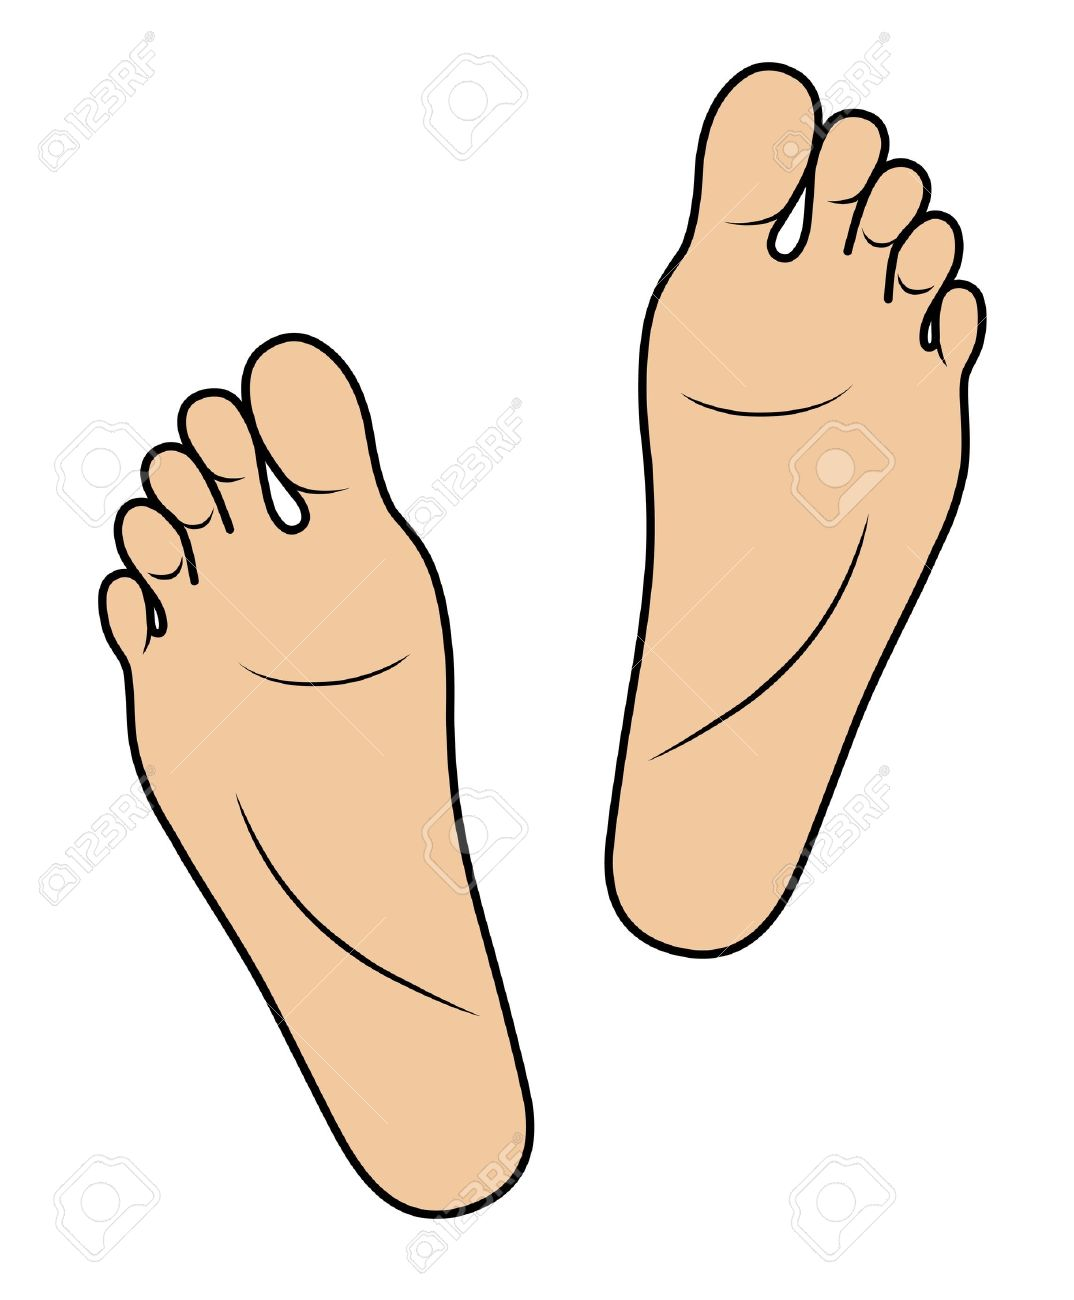 Fooot clipart image library Clipart foot 3 » Clipart Station image library